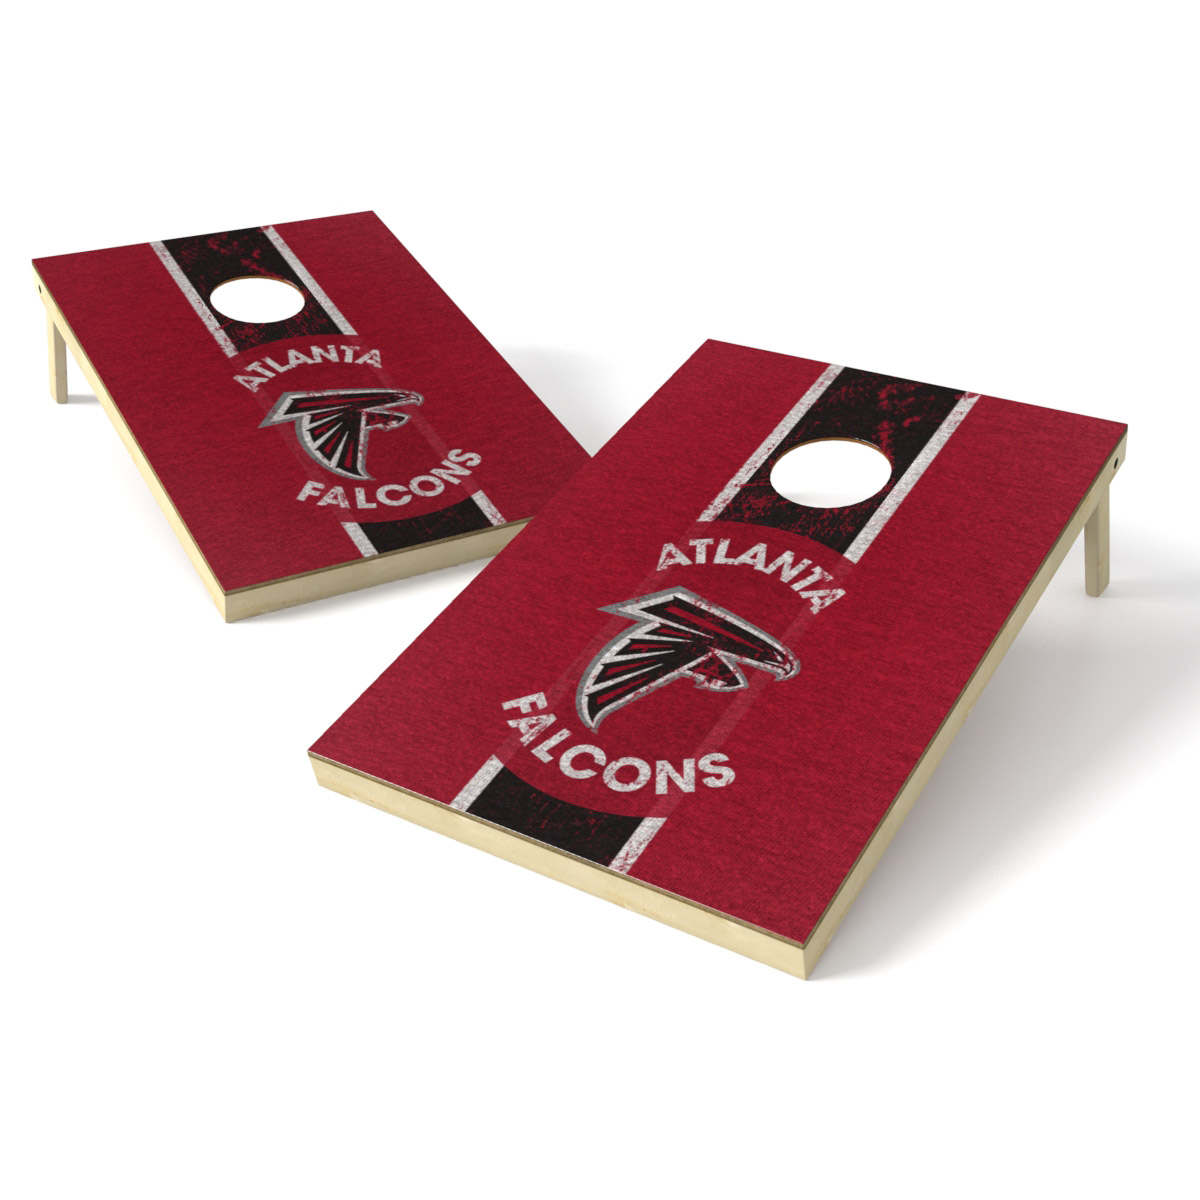 Atlanta Falcons 2' x 3' Heritage Shield Tailgate Toss Game - No Size